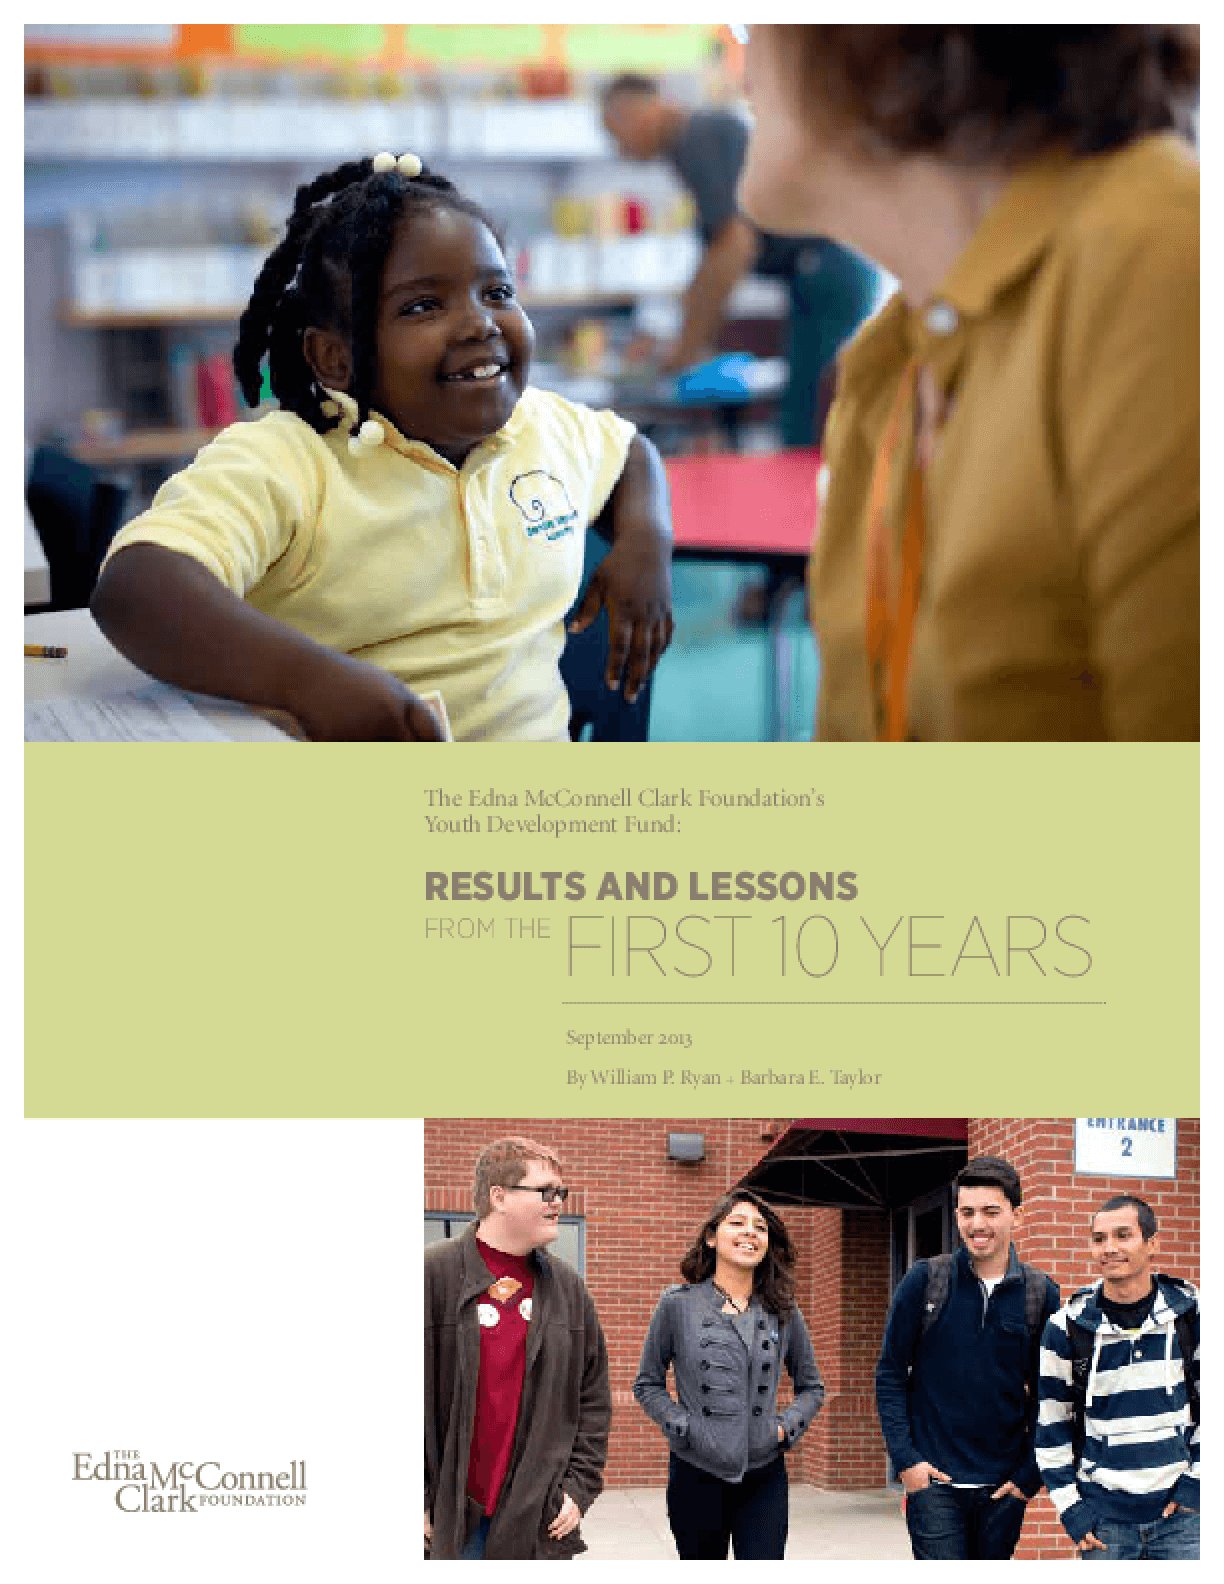 The Edna McConnell Clark Foundation's Youth Development Fund: Results and Lessons from the First Ten Years